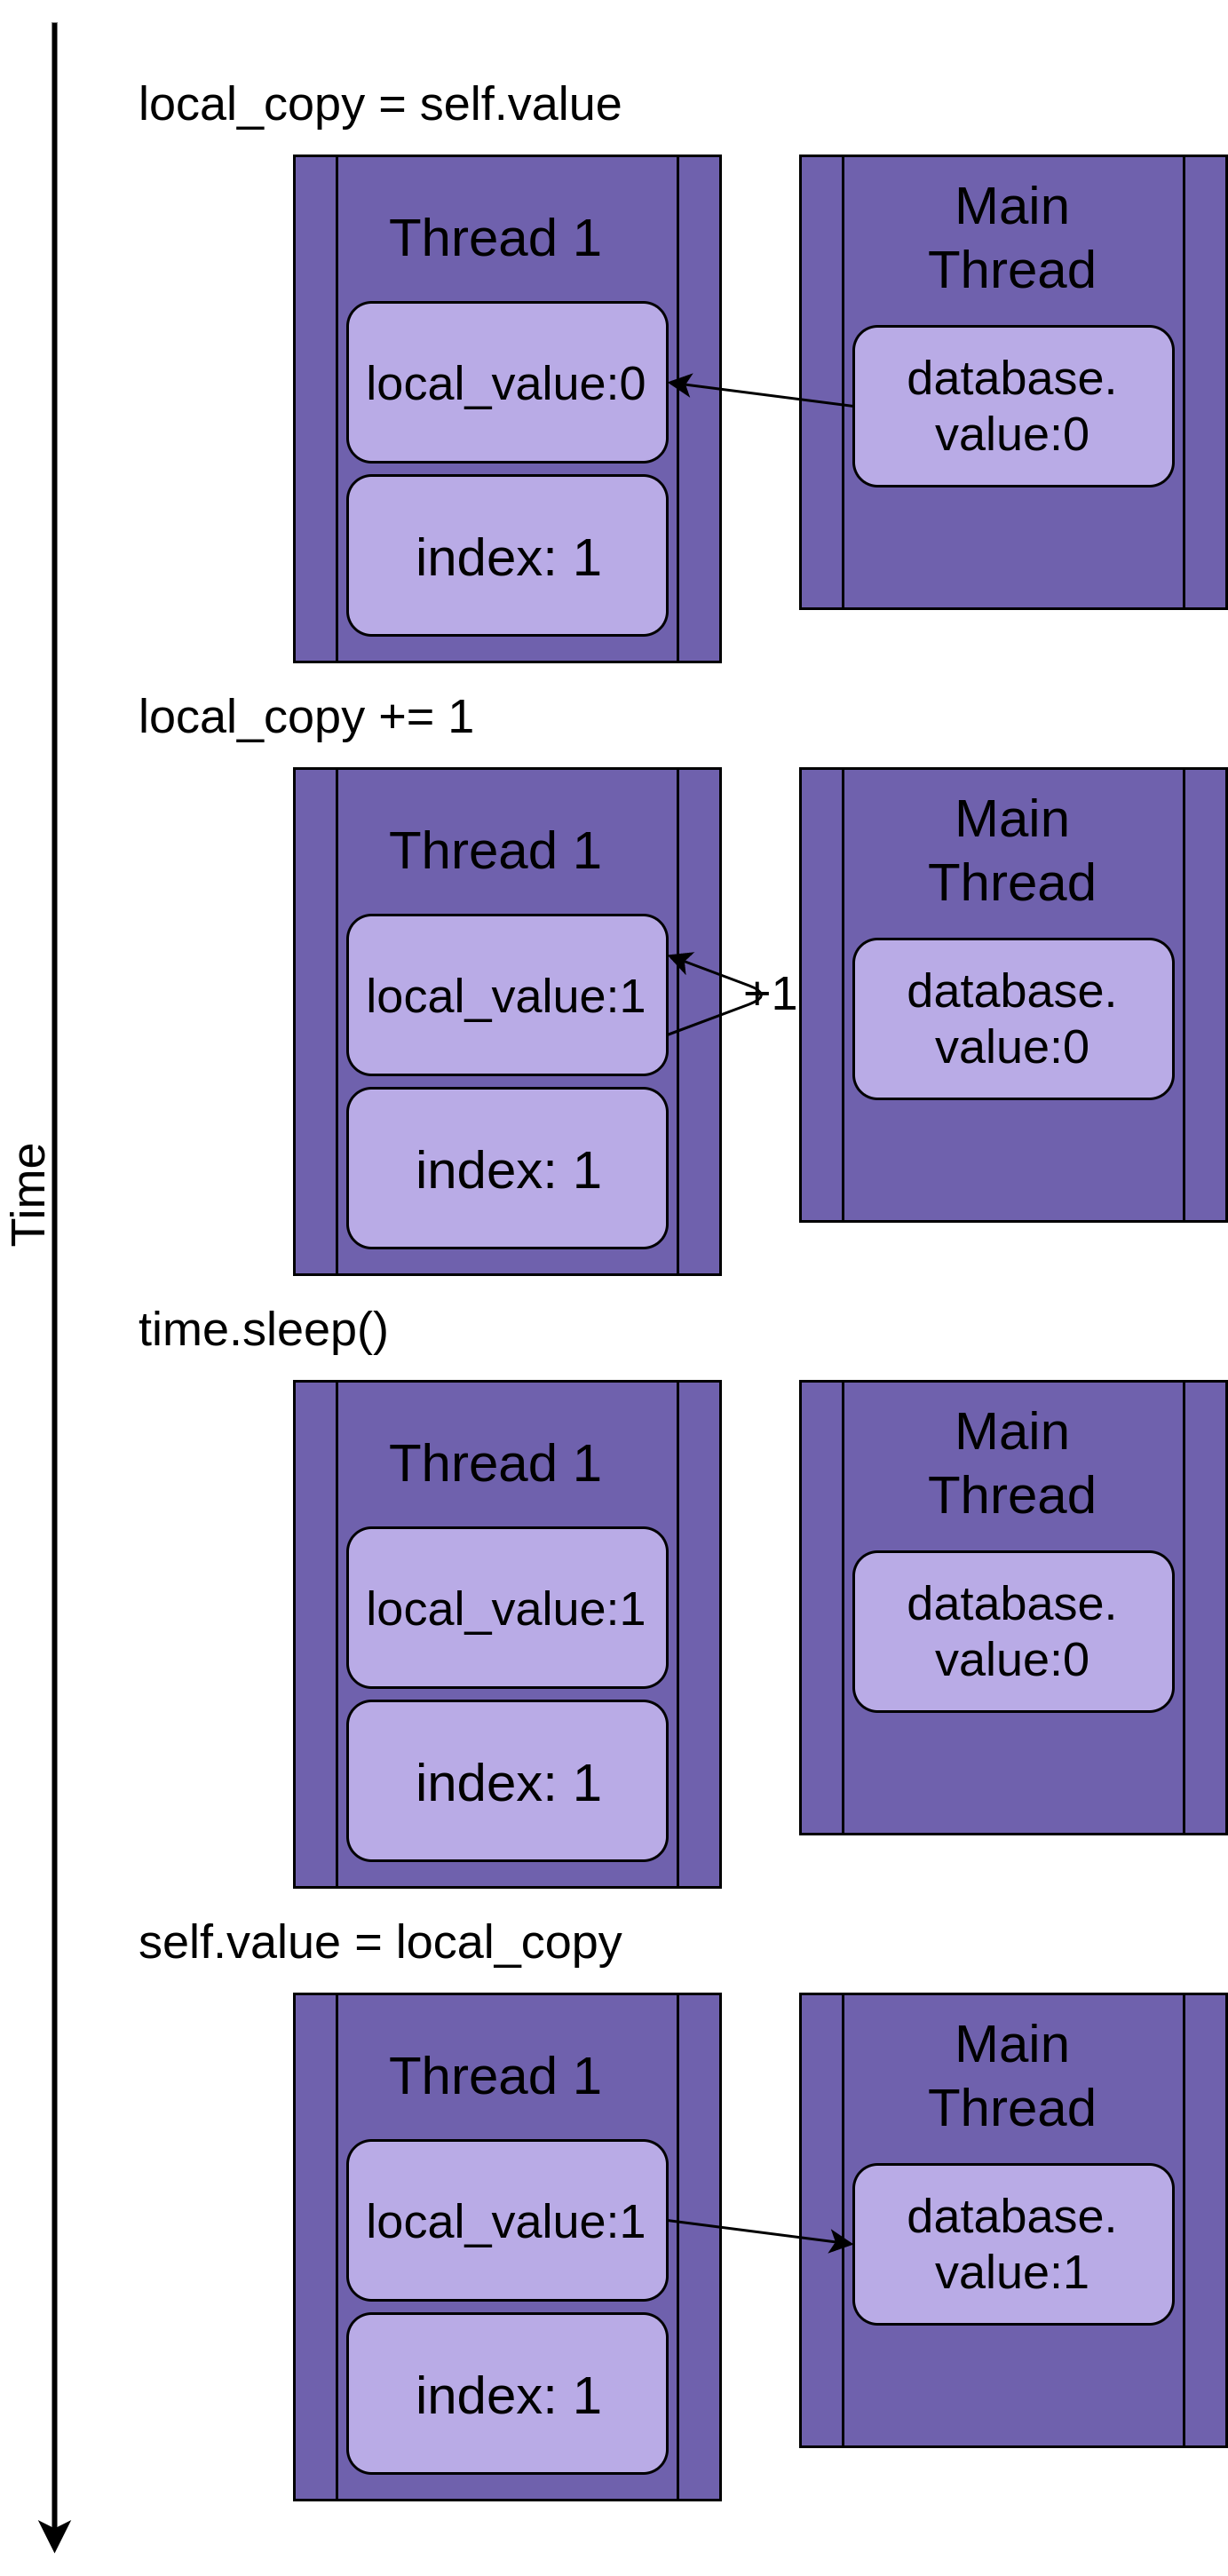 Single thread modifying a shared database